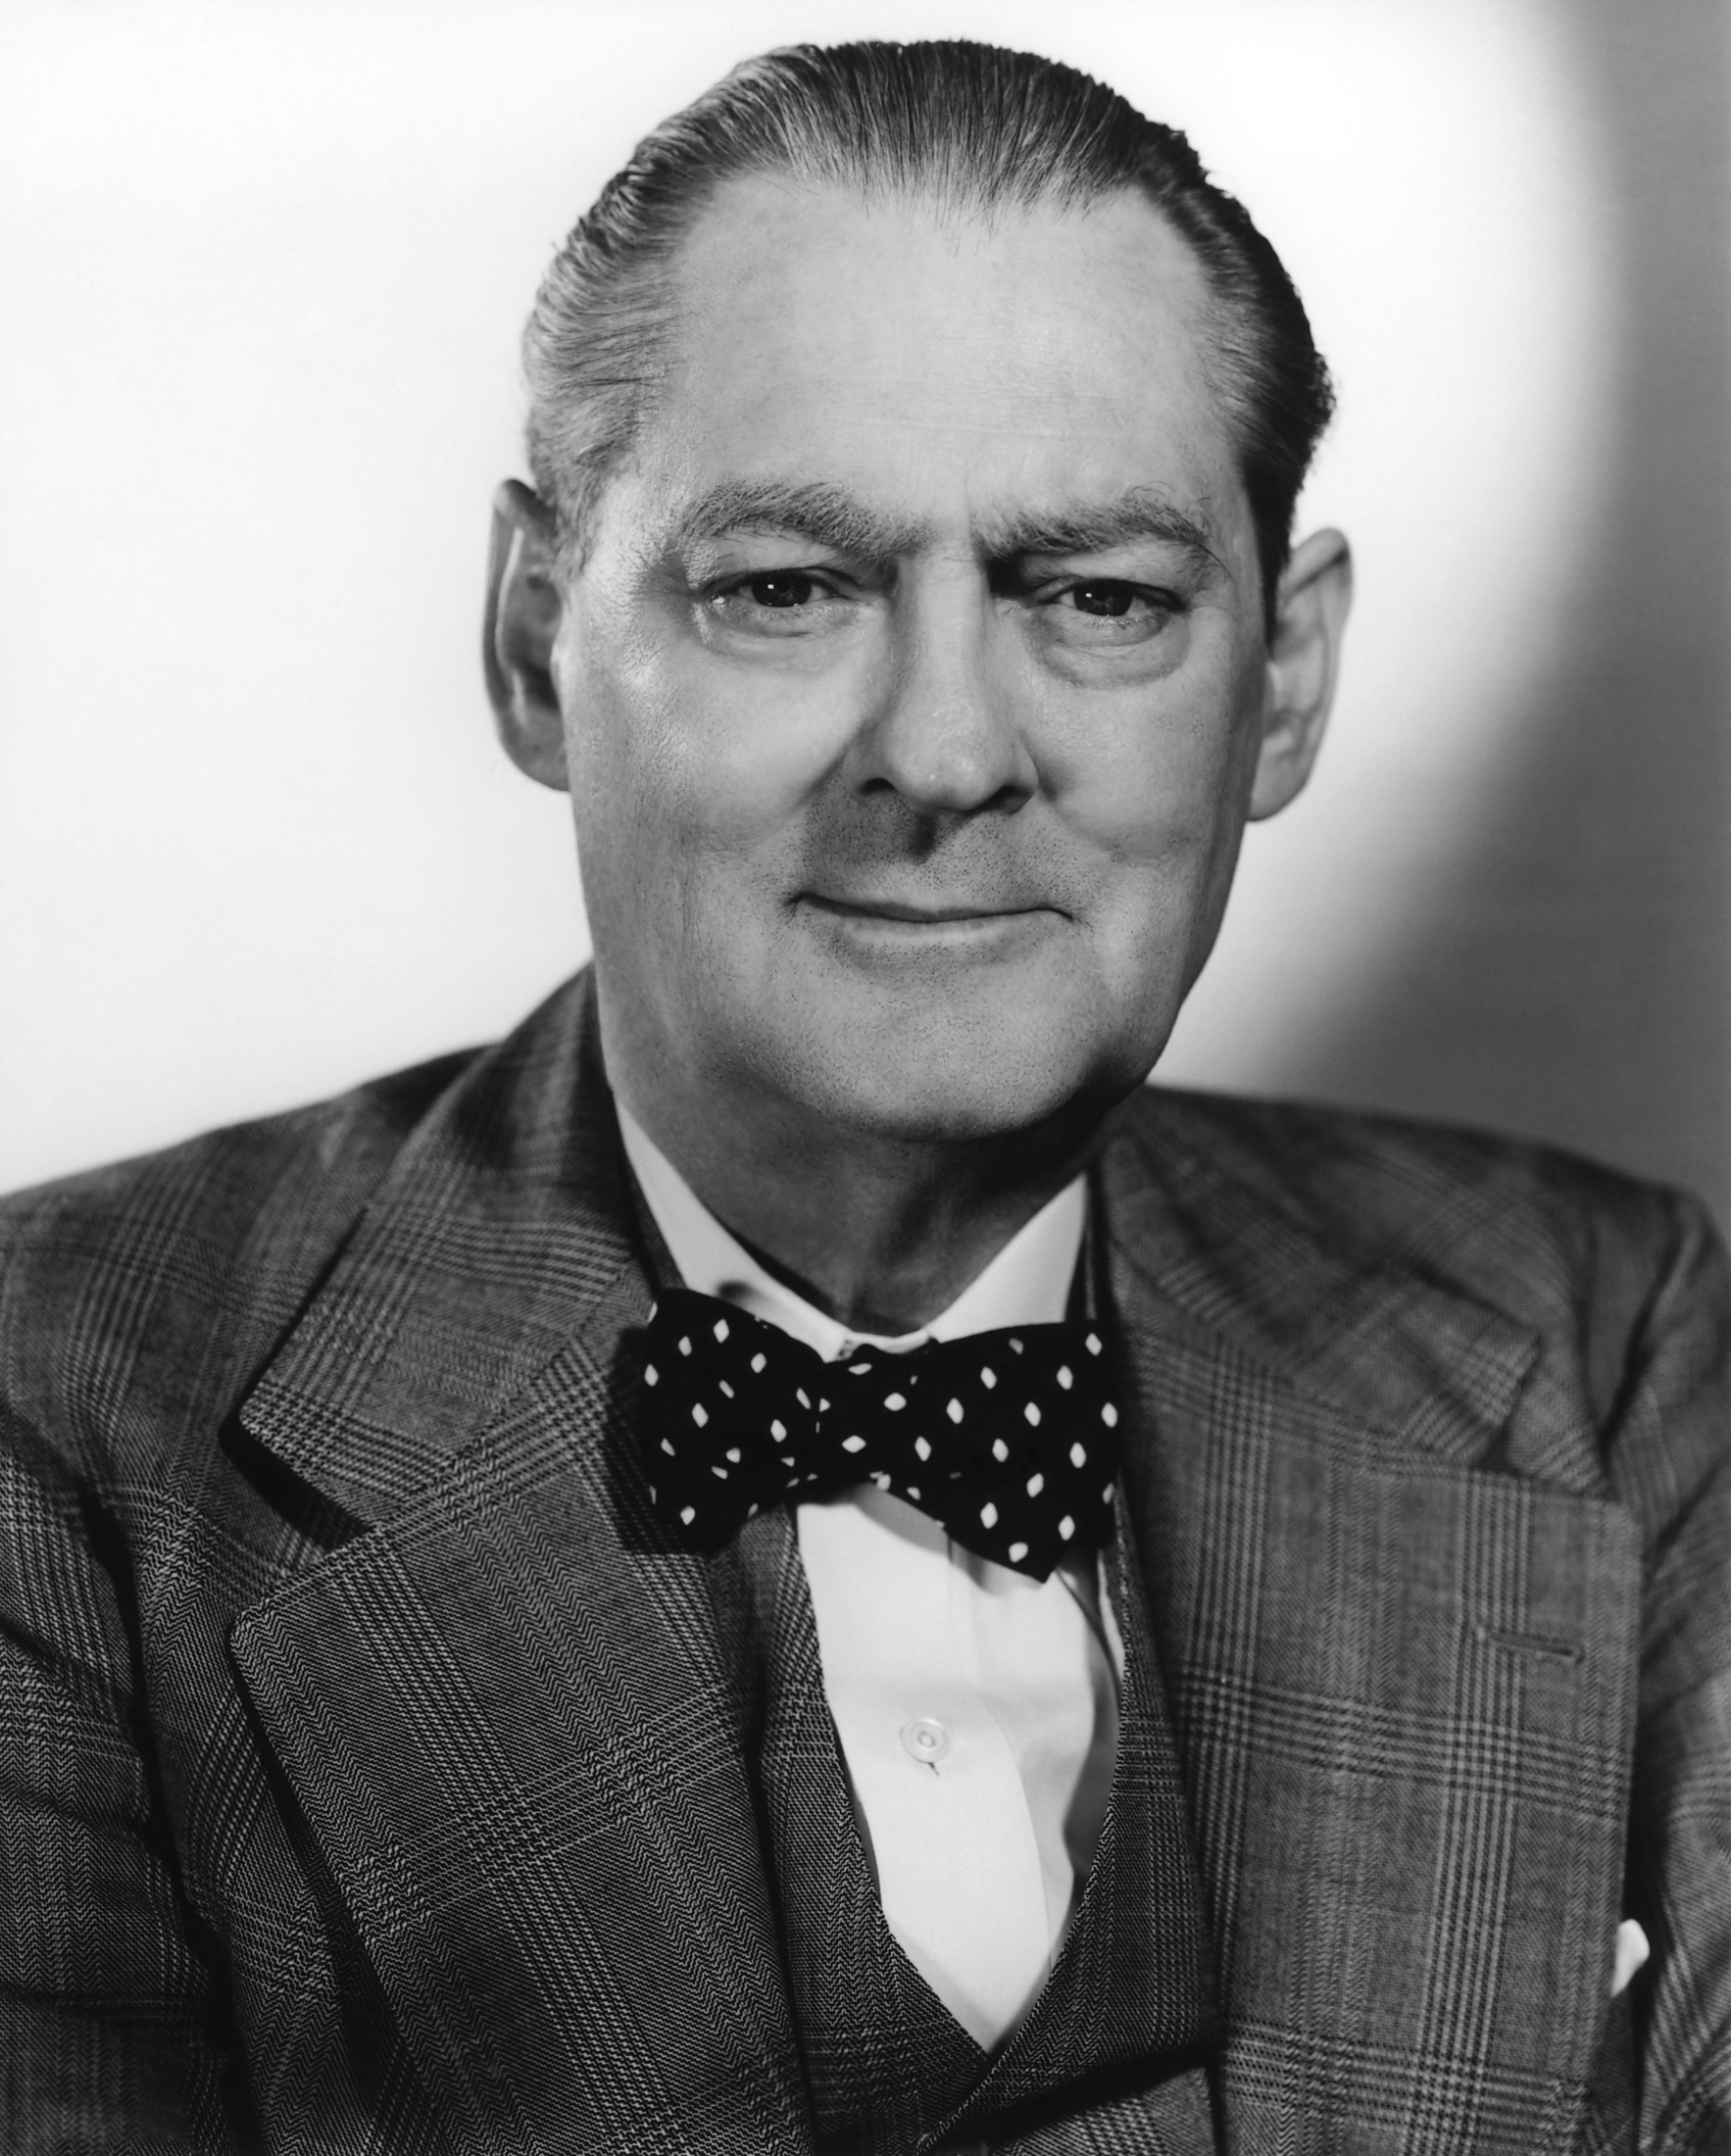 Lionel Barrymore Net Worth